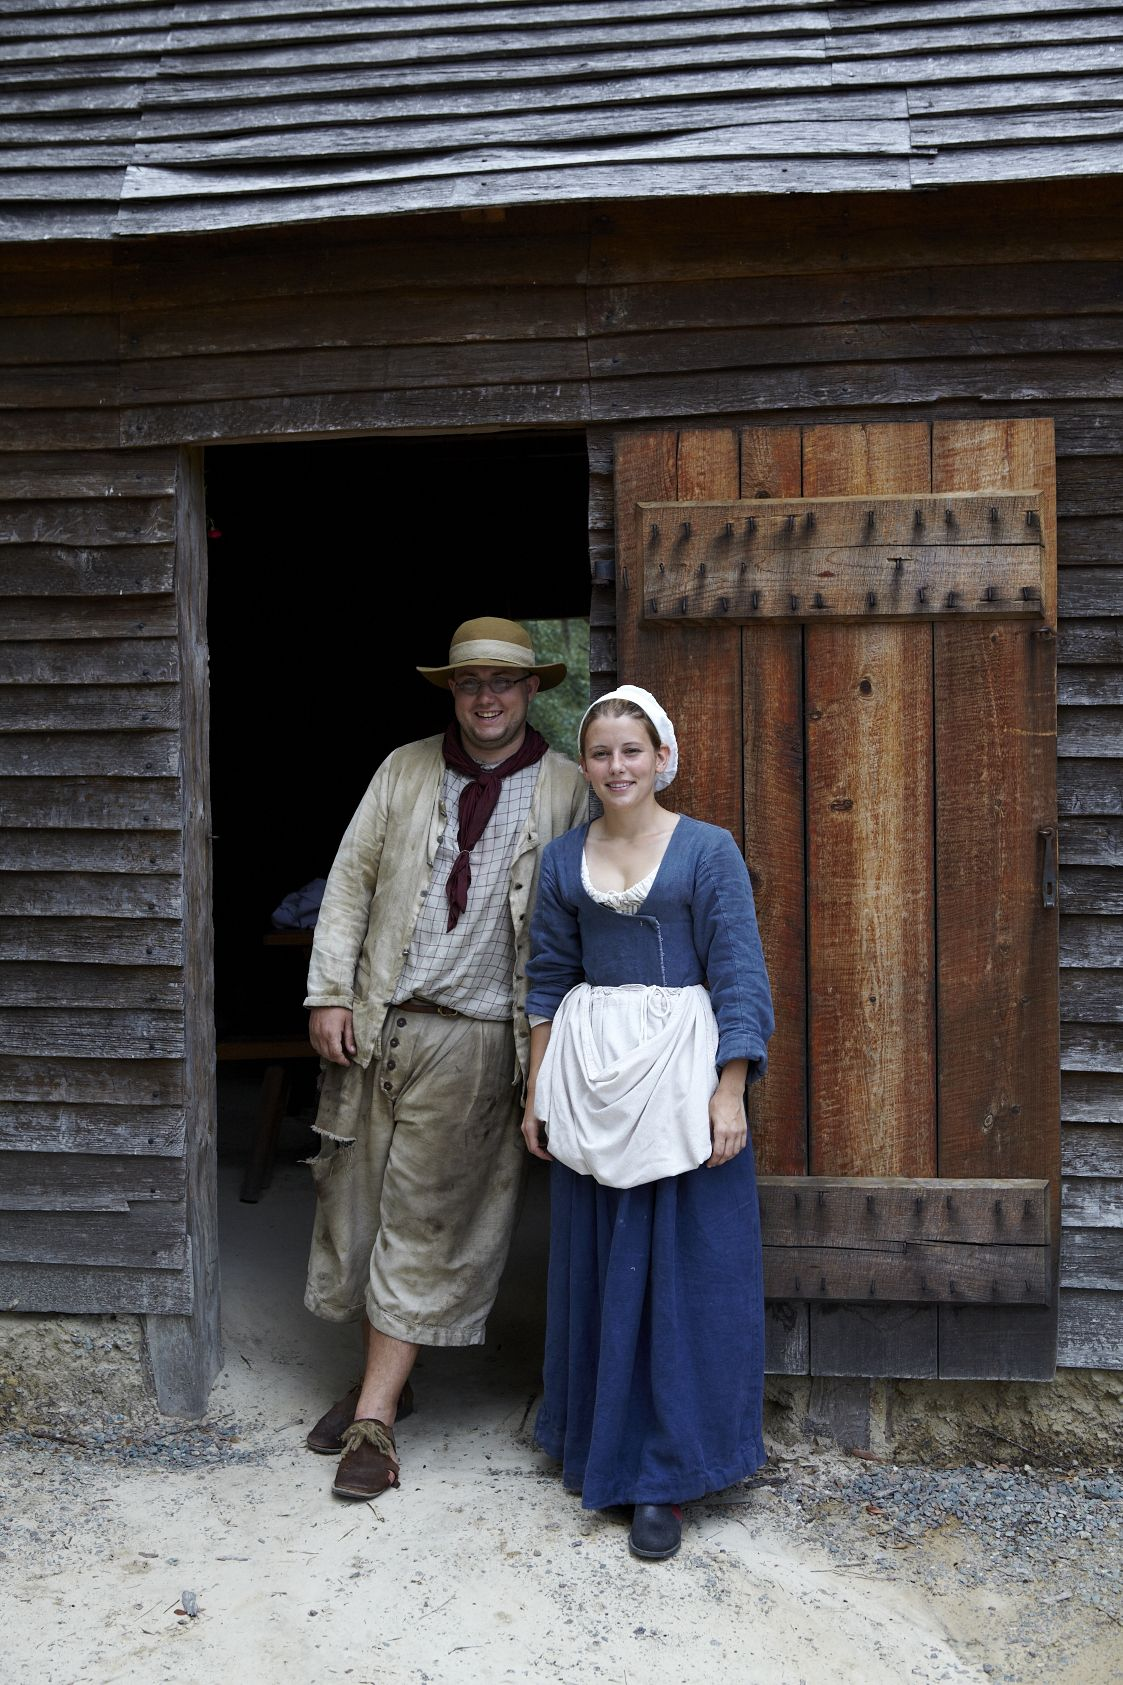 What Was Life Like In The Colonial Time Period